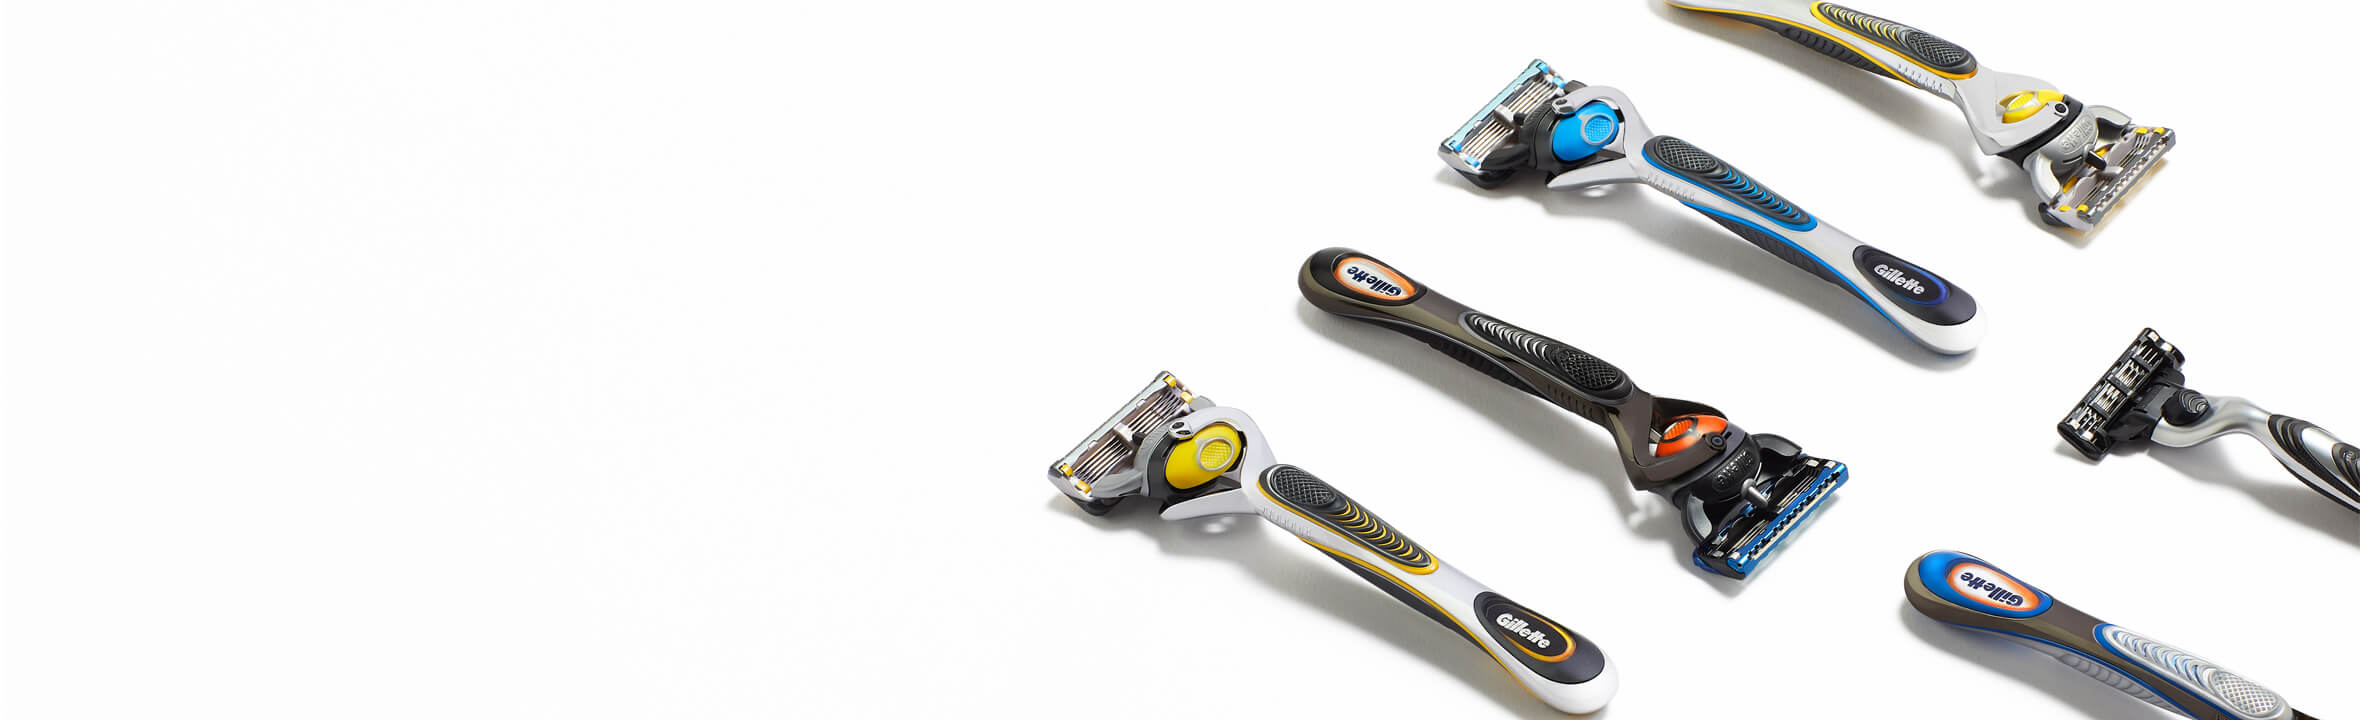 The Gillette razor range